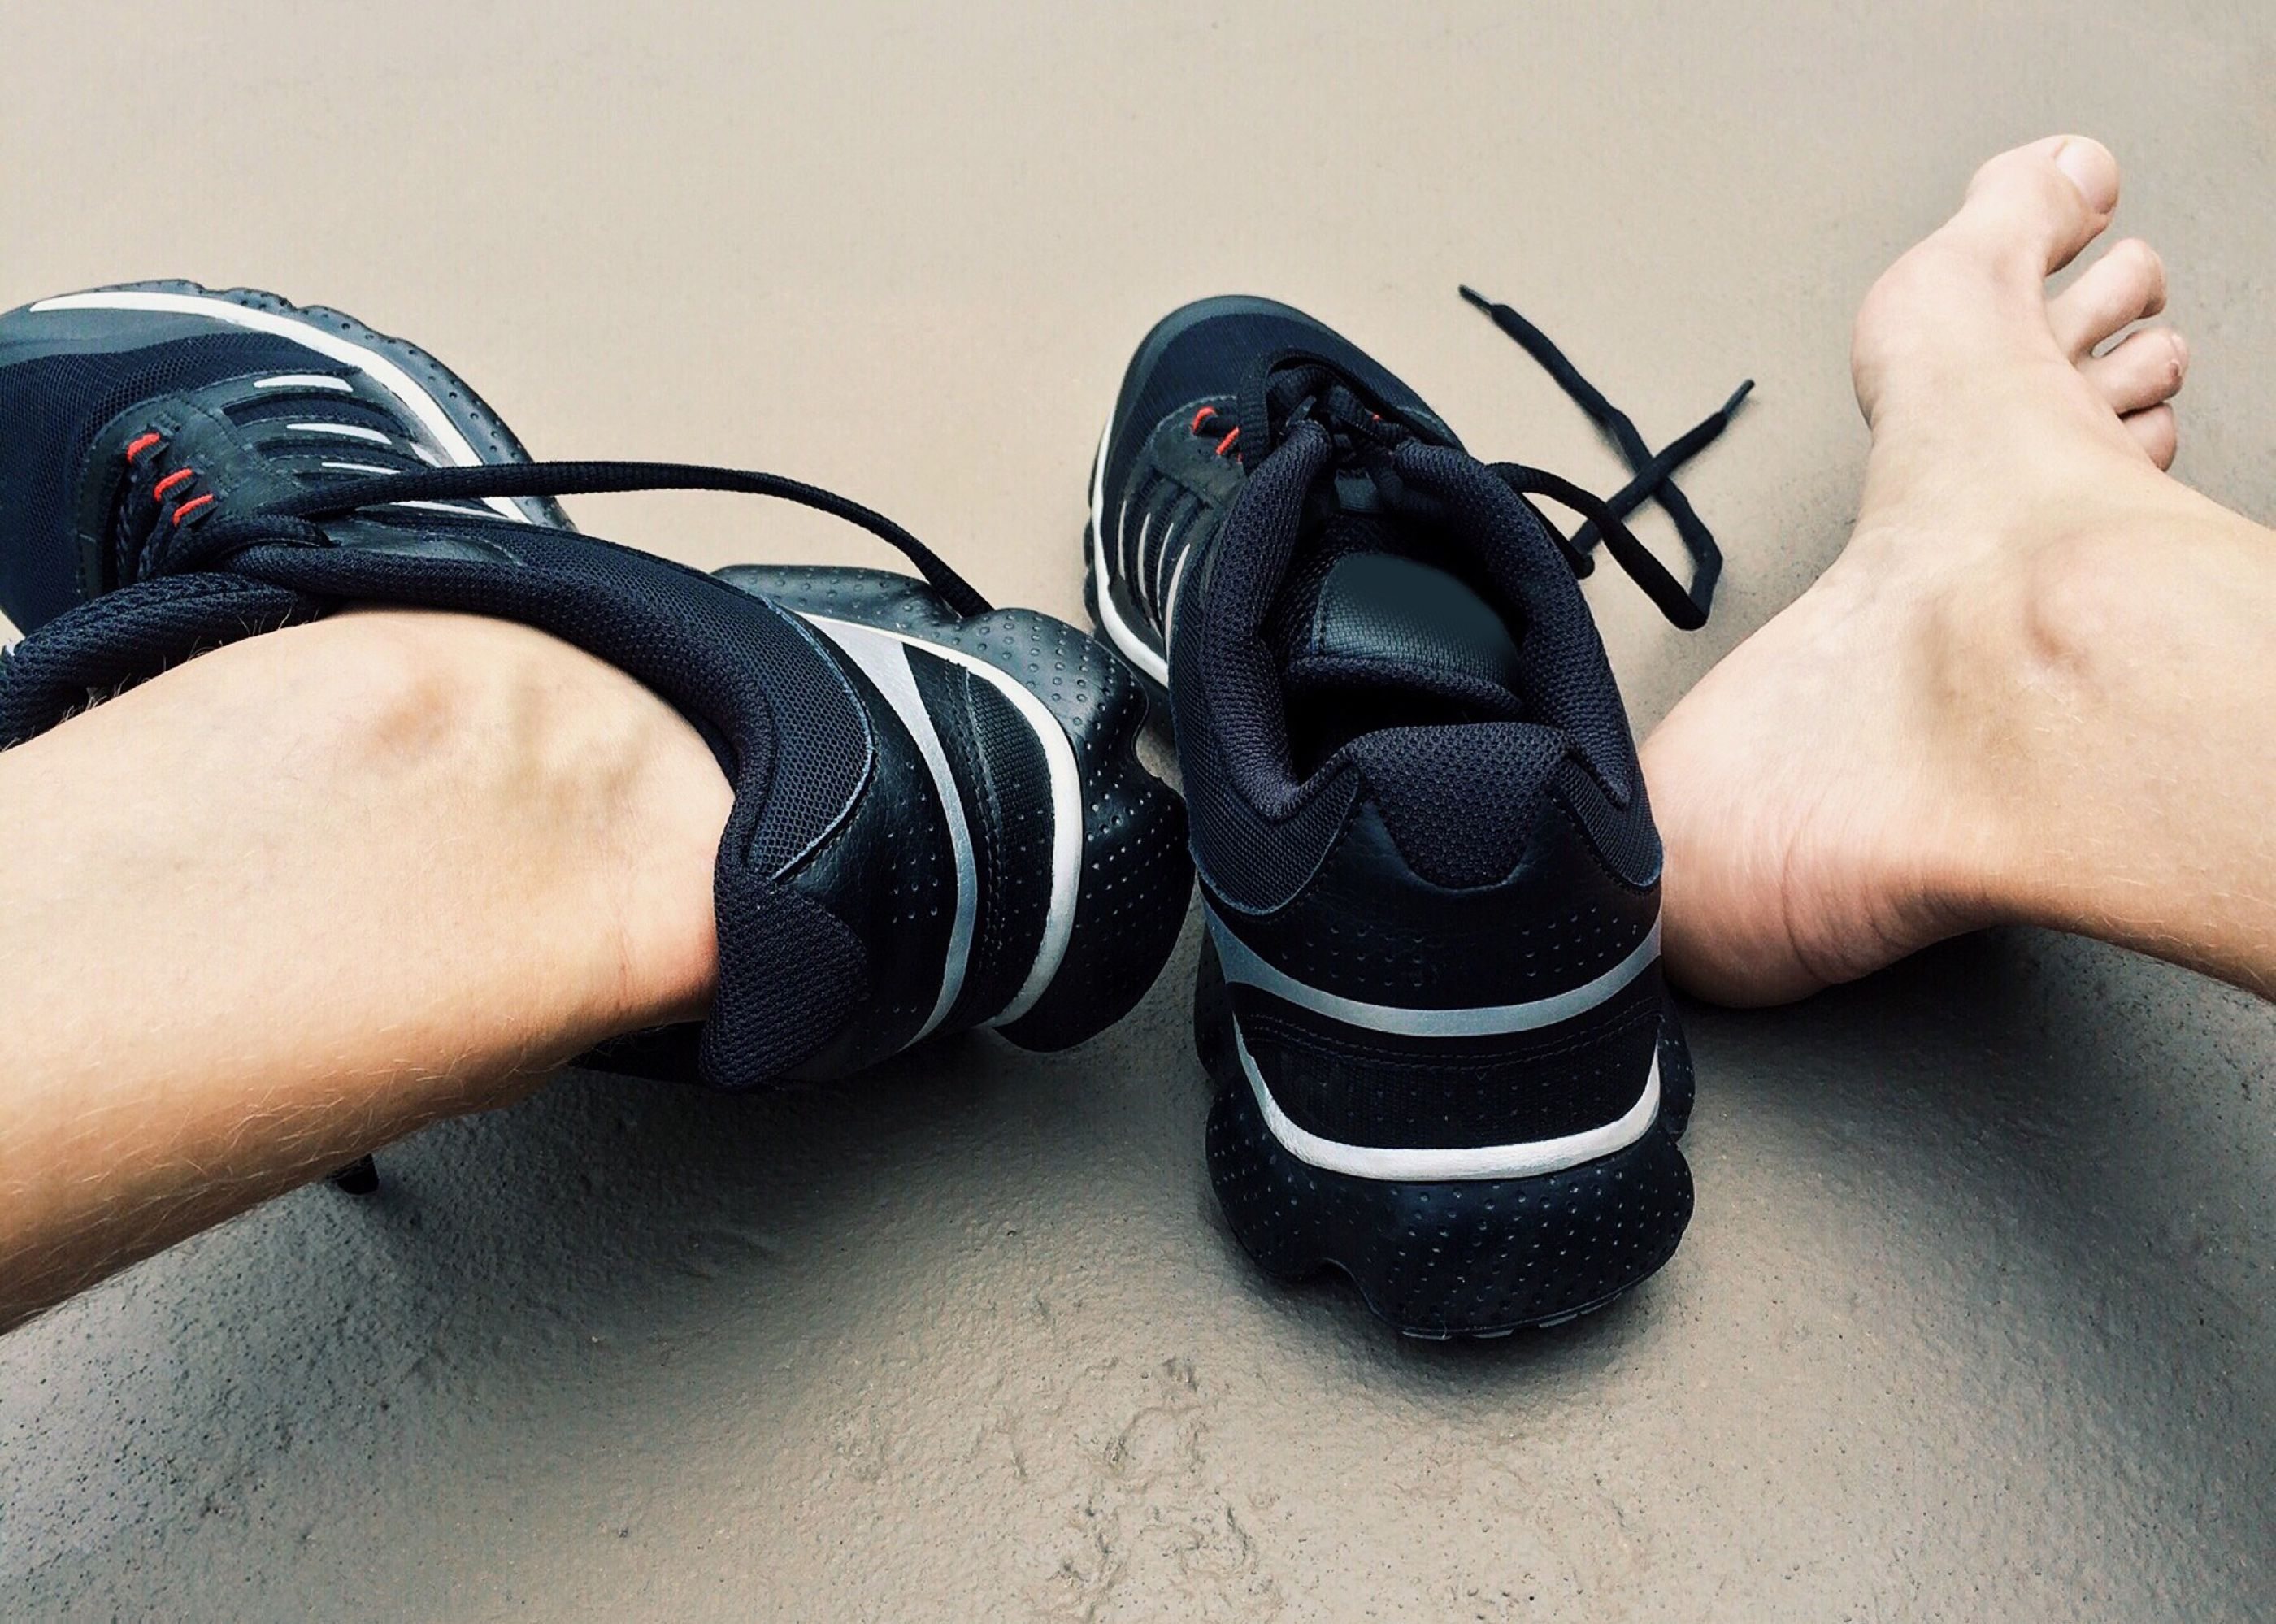 Of all the injuries that are common in distance running, plantar fasciitis may be the most frustrating and debilitating.